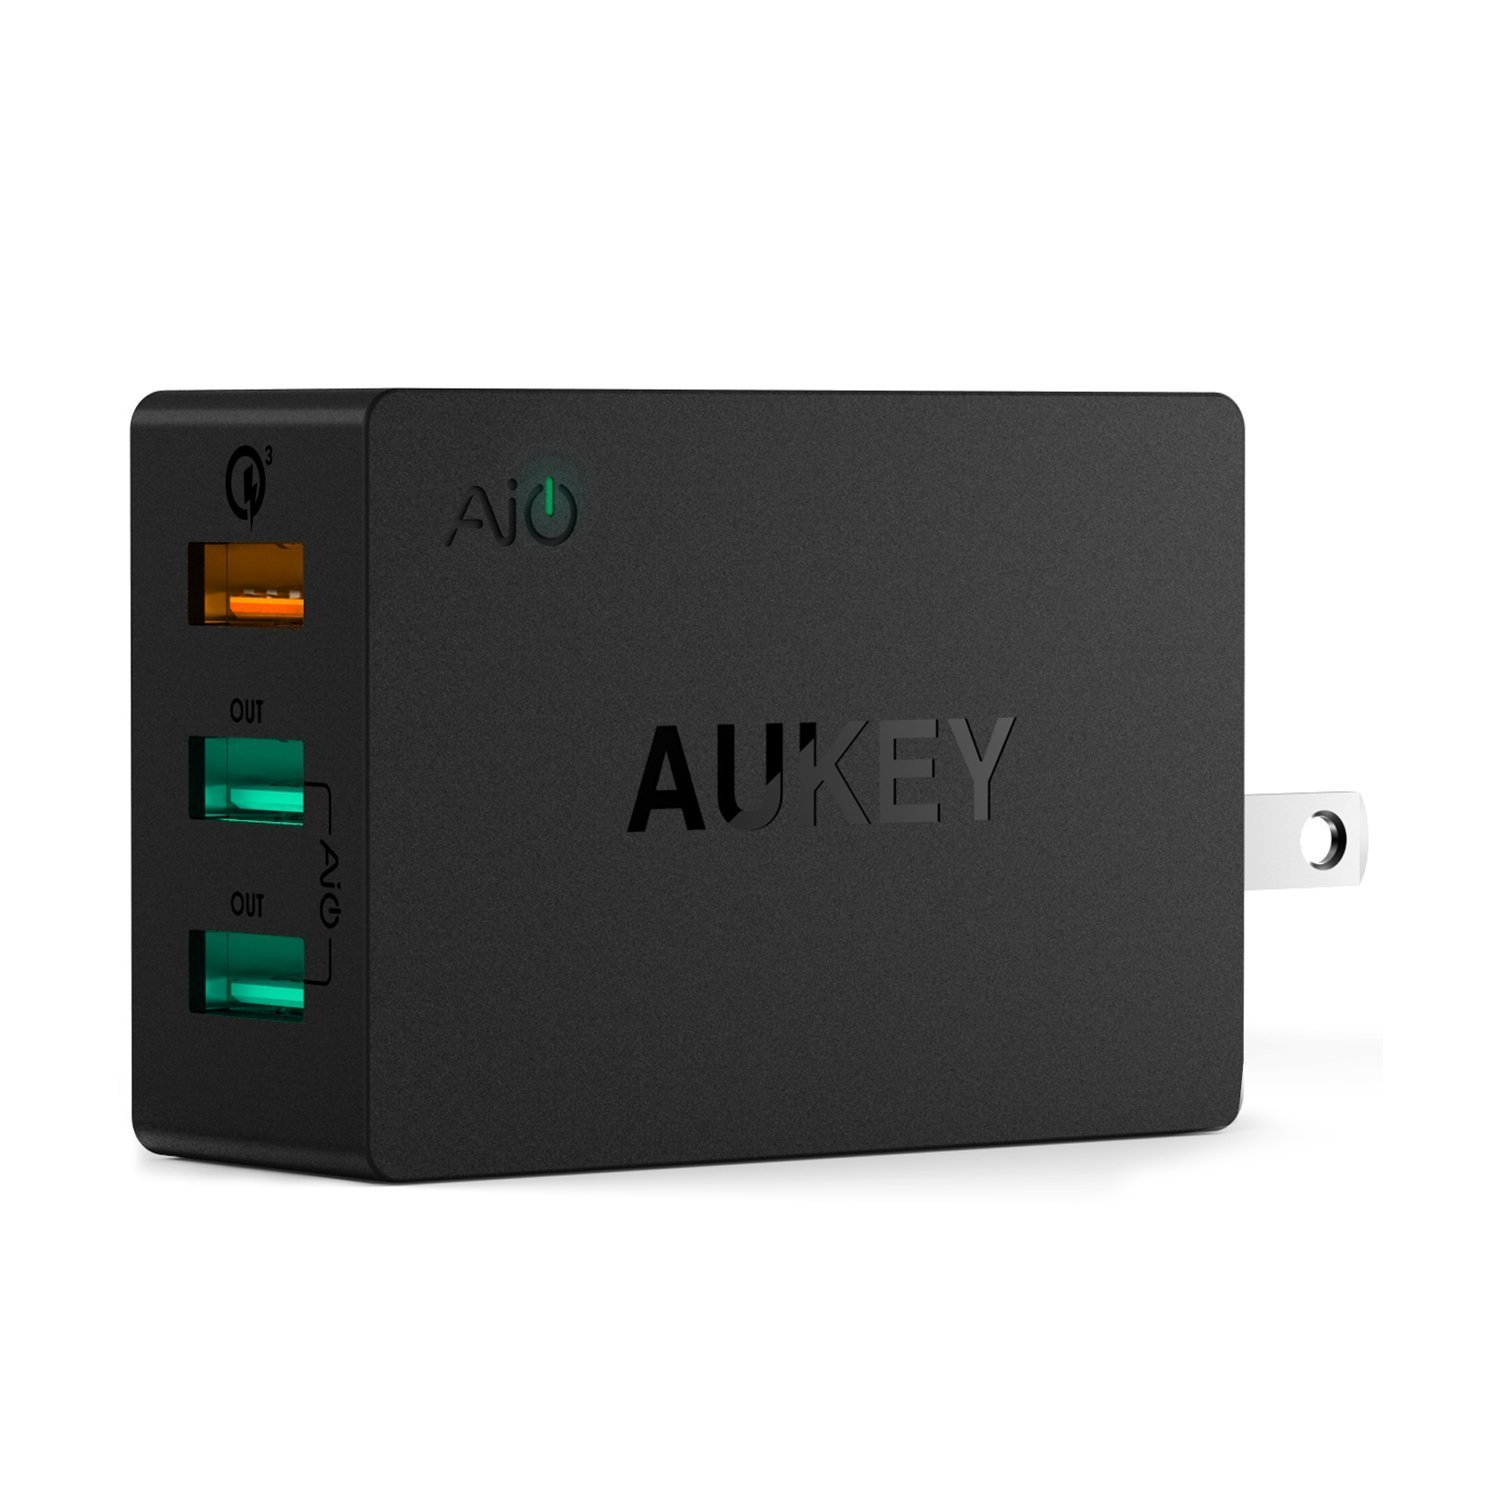 Quick Charge 3.0 AUKEY 43.5W USB Wall Charger with 3 USB Ports & Foldable Plug for Samsung Galaxy S8/S8+/Note8, LG G6/V30, iPhone X/8/Plus and More